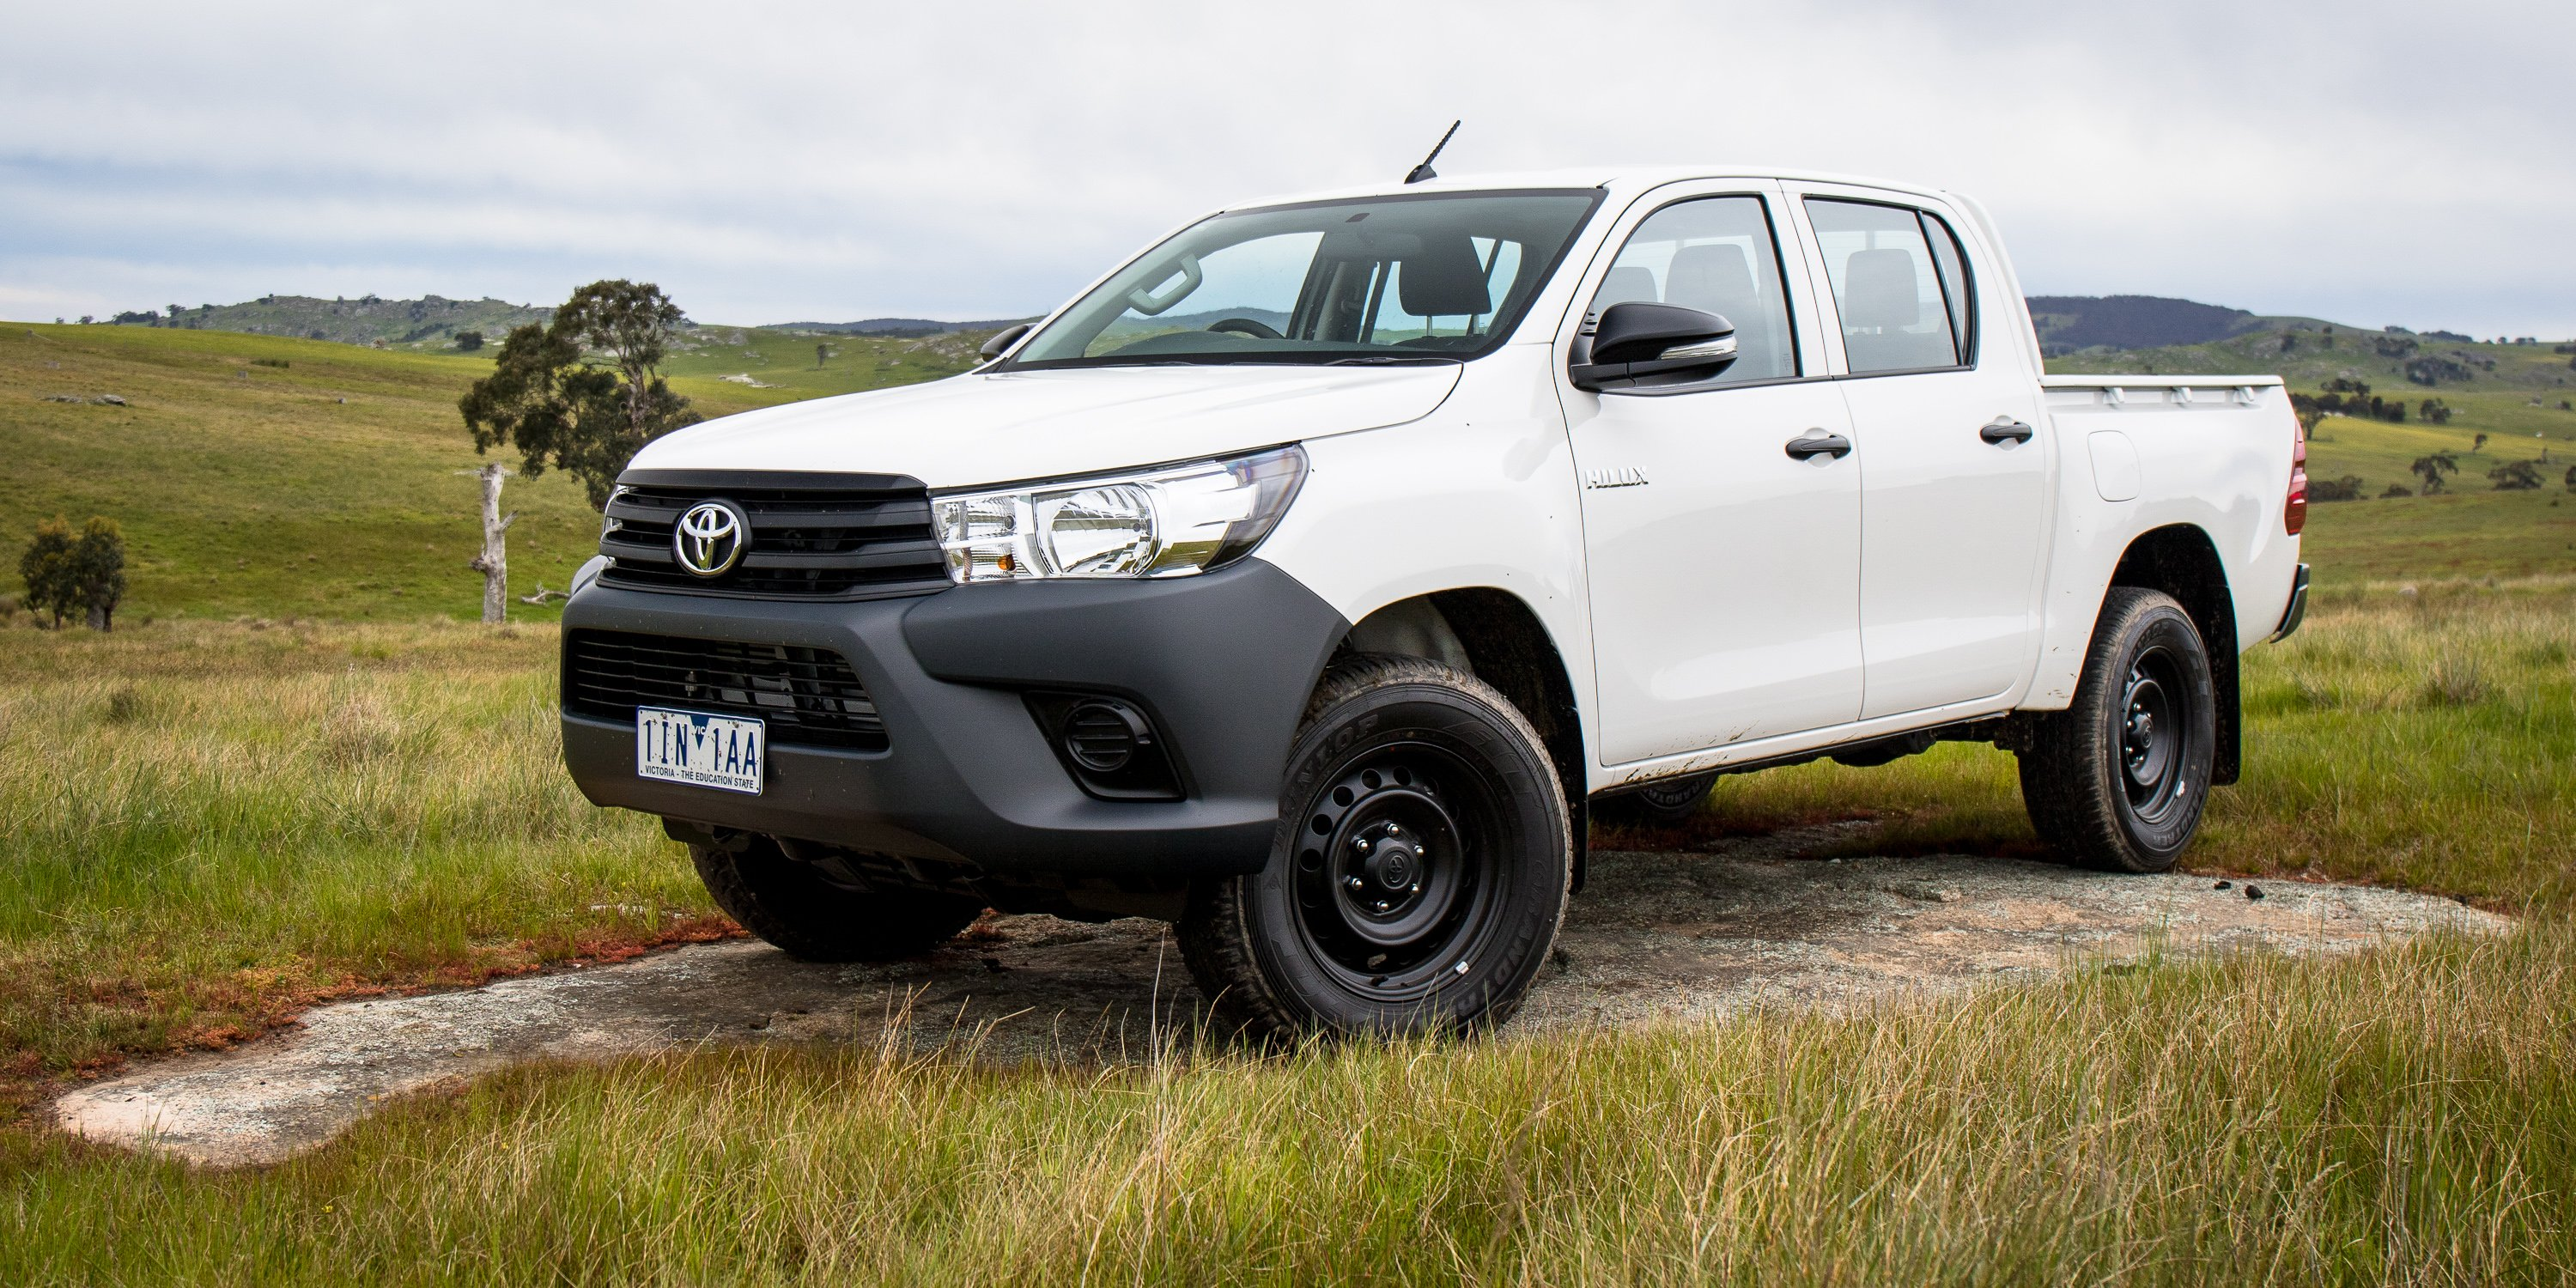 2016 toyota hilux workmate 4x4 review caradvice. Black Bedroom Furniture Sets. Home Design Ideas